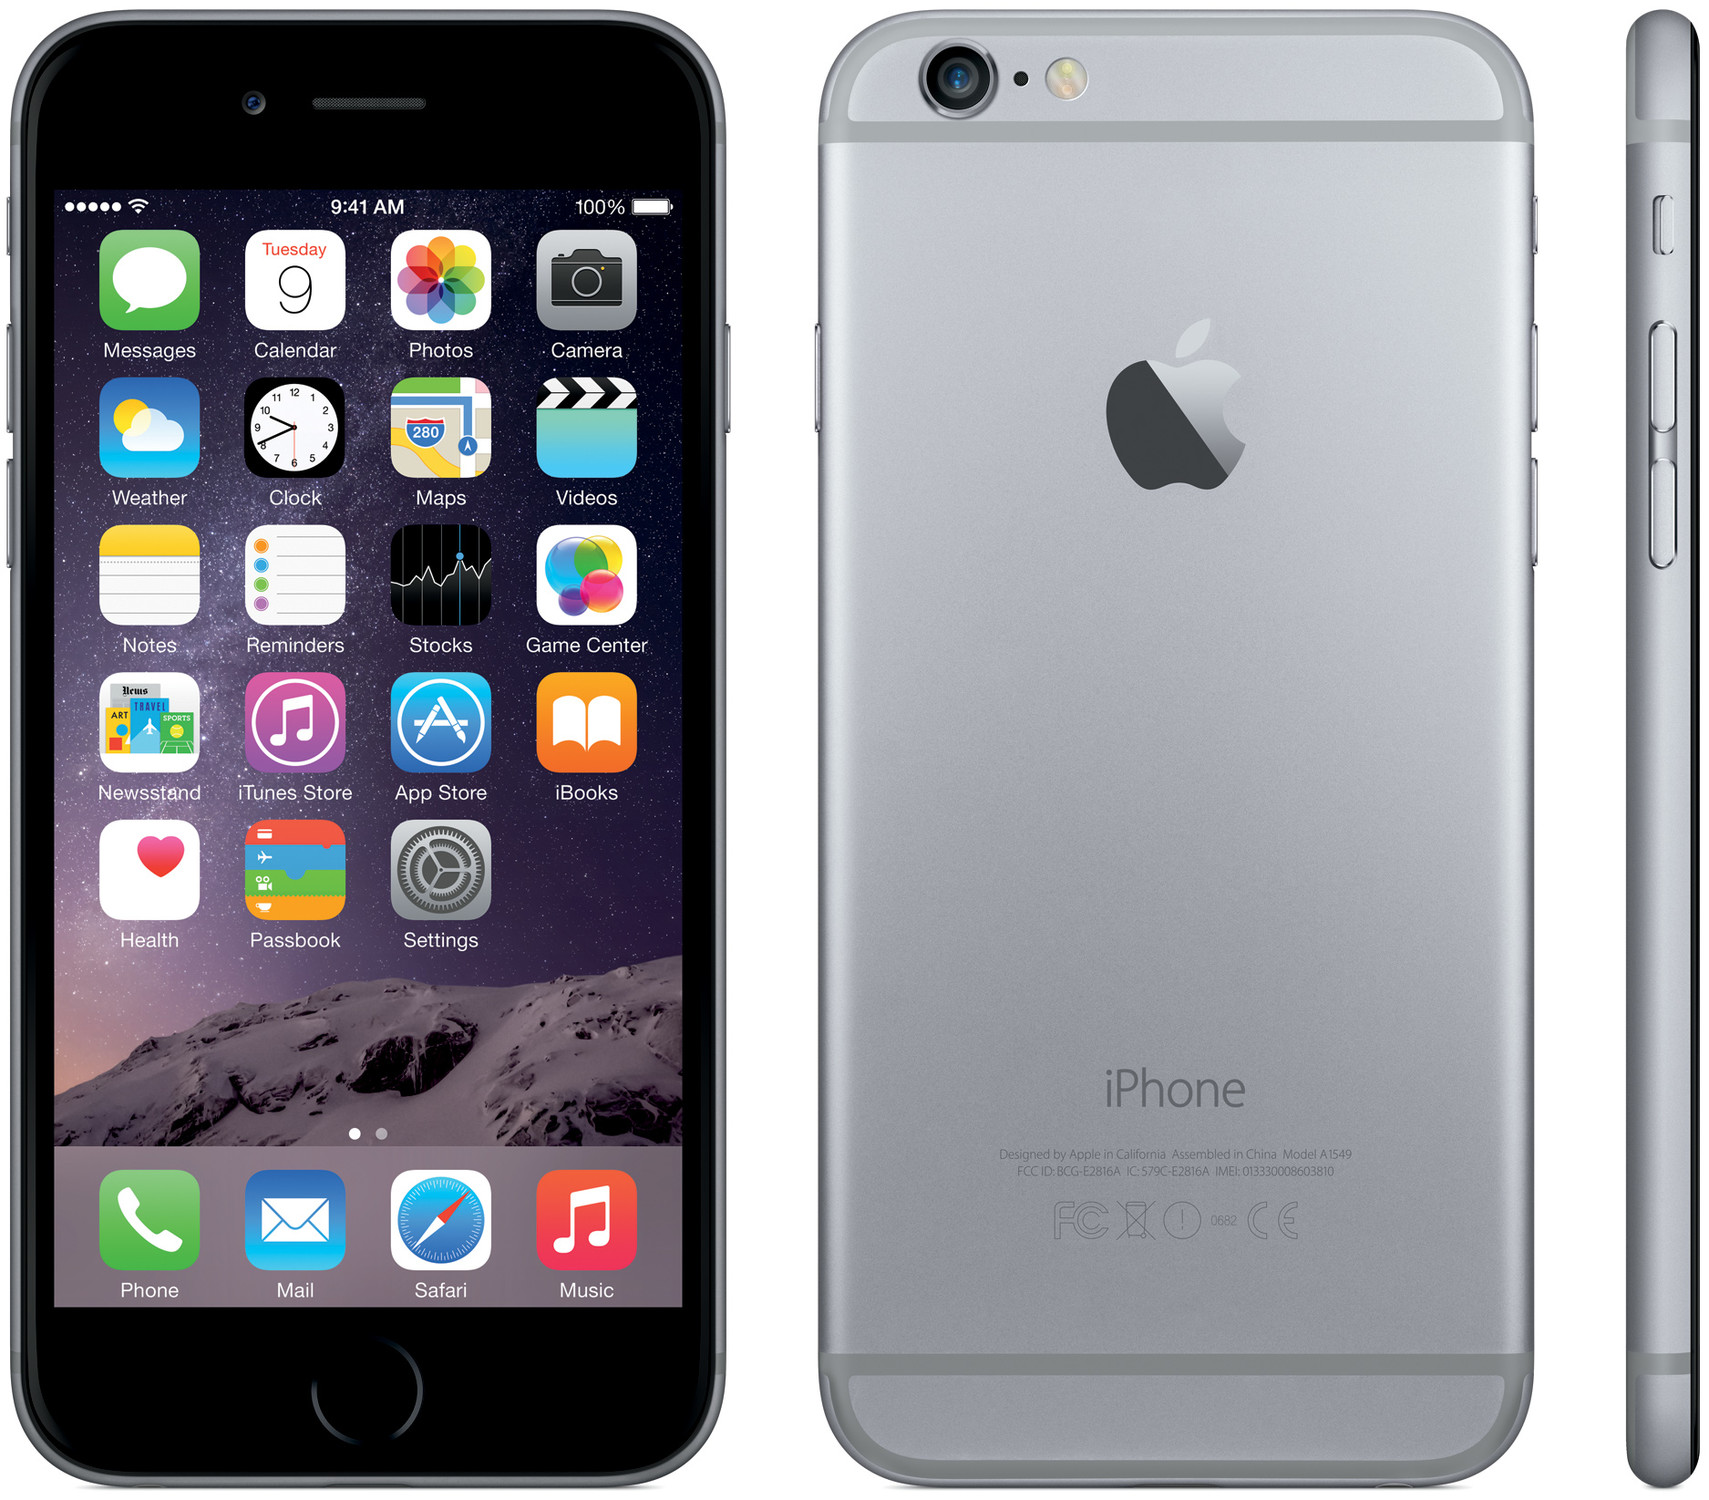 black iphone 6s apple iphone 6 plus a1524 16gb 246 zellikleri ve fiyatı 10278